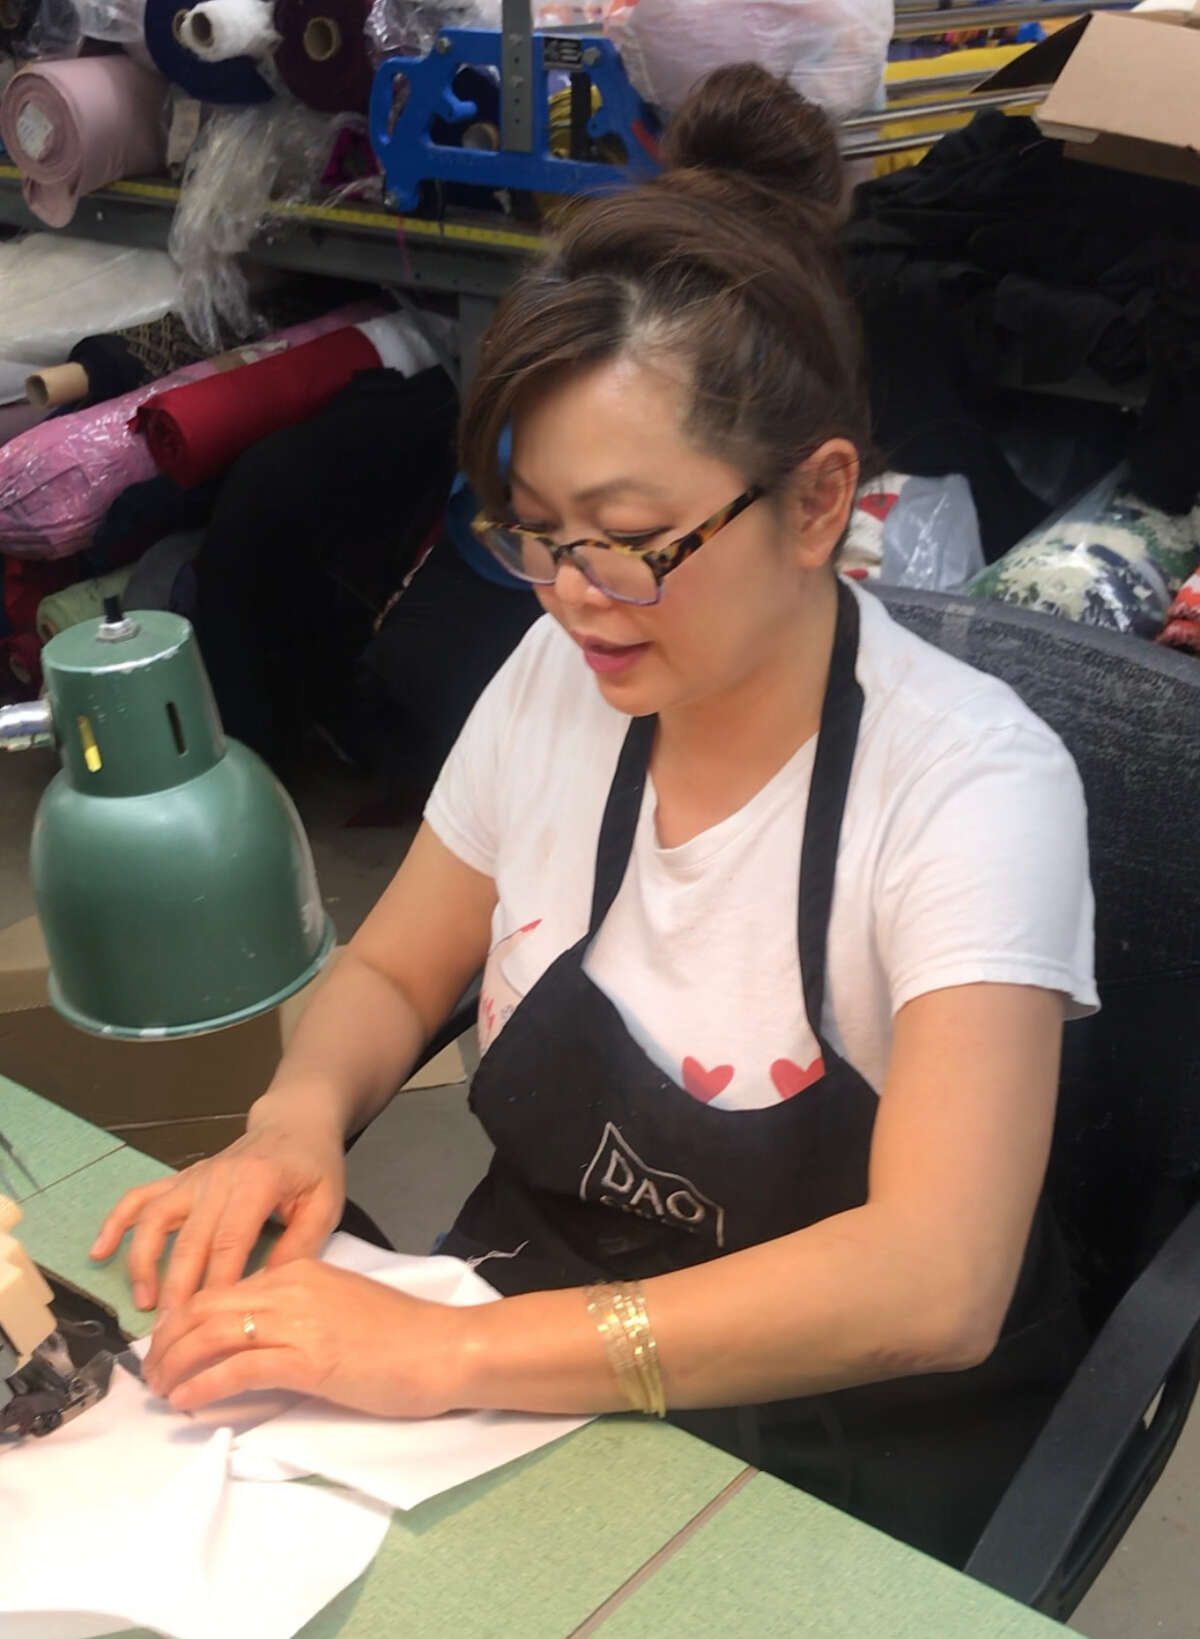 Project Runway winner and Houston fashion designer Chloe Dao has started producing surgical masks to meet the growing demand with the coronavirus pandemic.